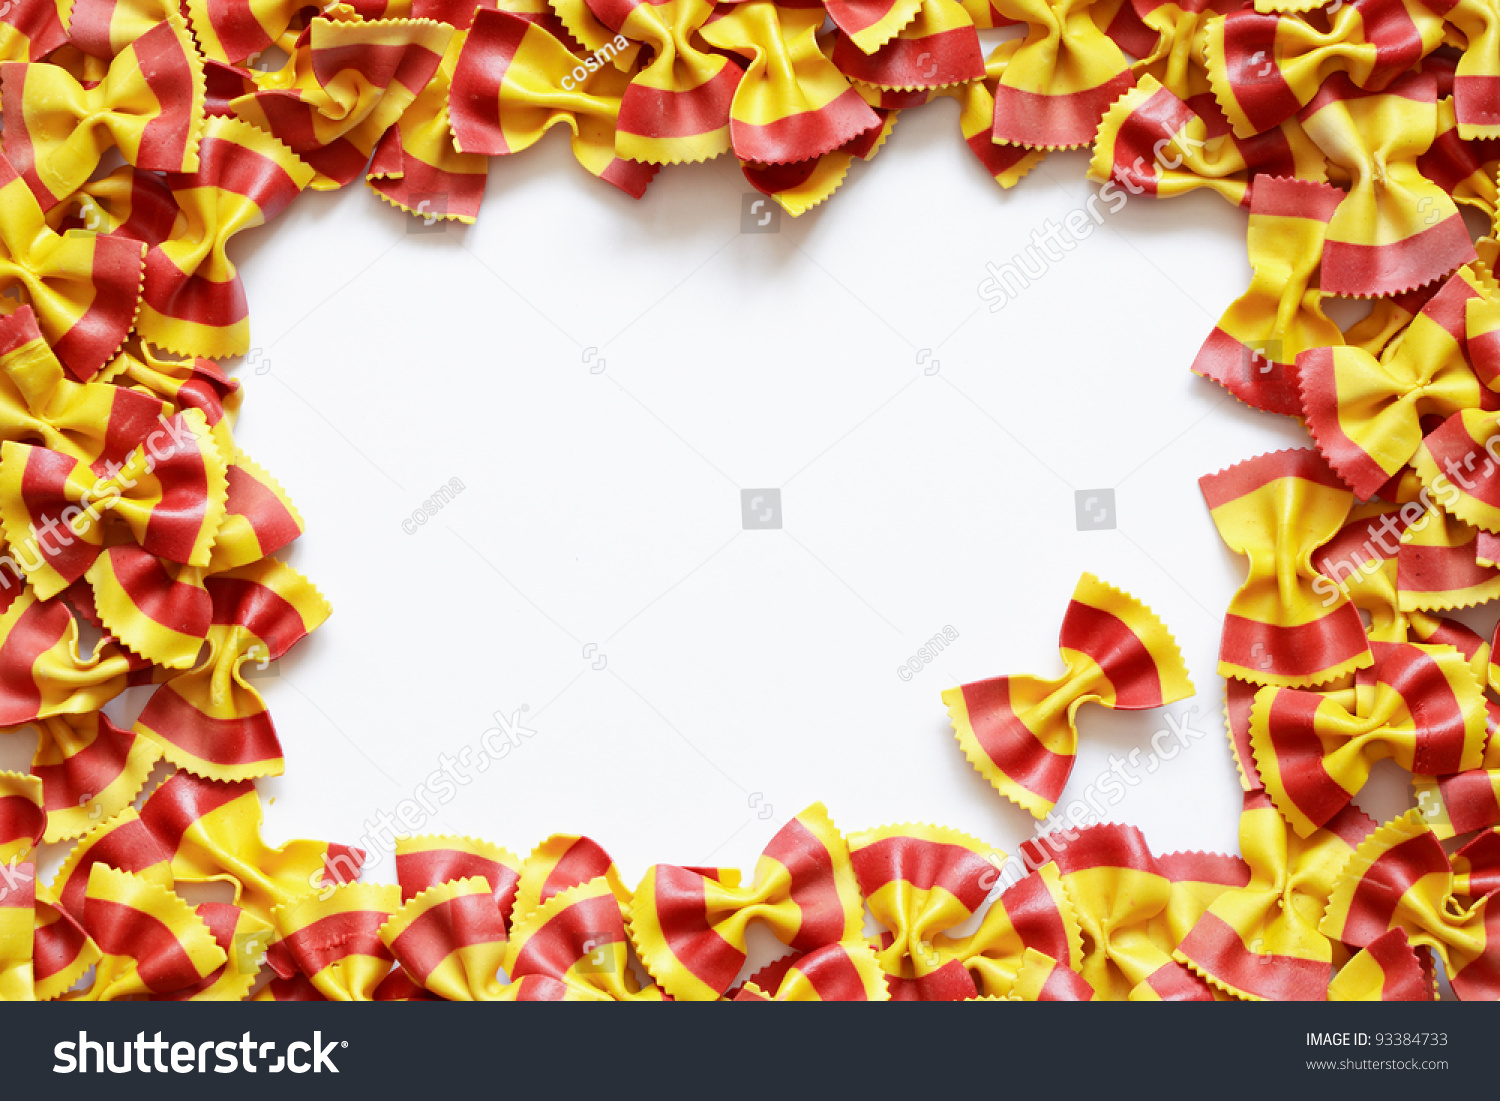 Border Made Italian Colorful Bow Tie Stock Photo 93384733 ...